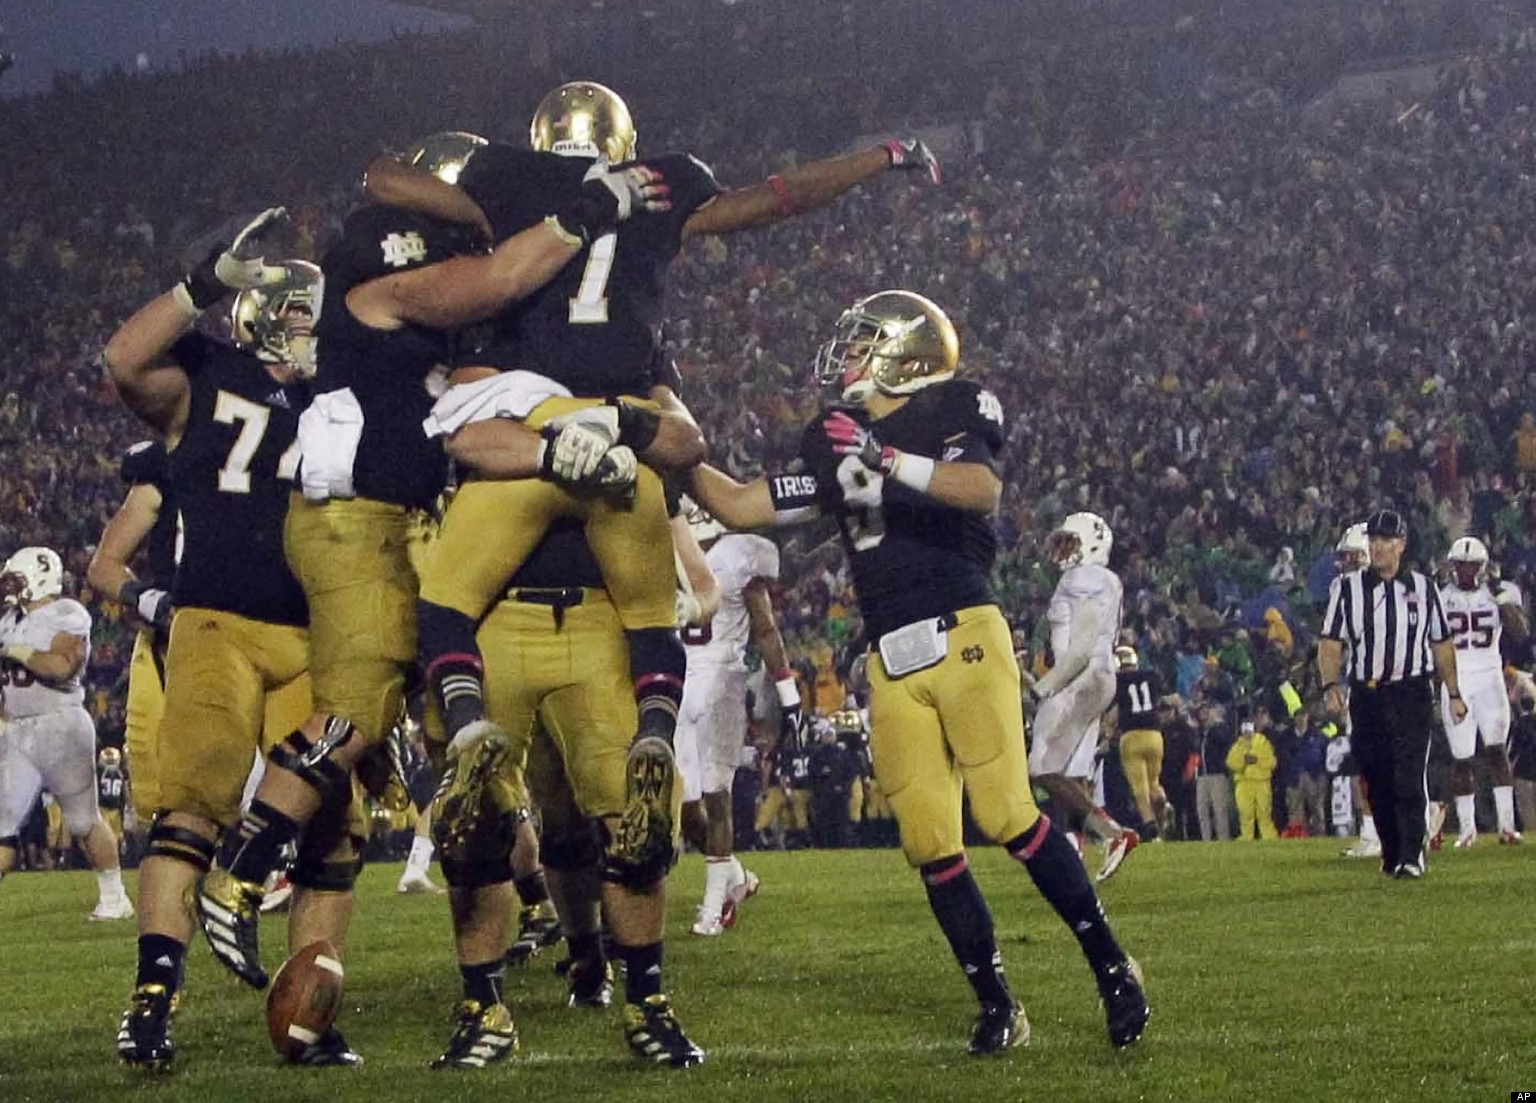 Notre Dame Football Download HD Wallpapers 1536x1103